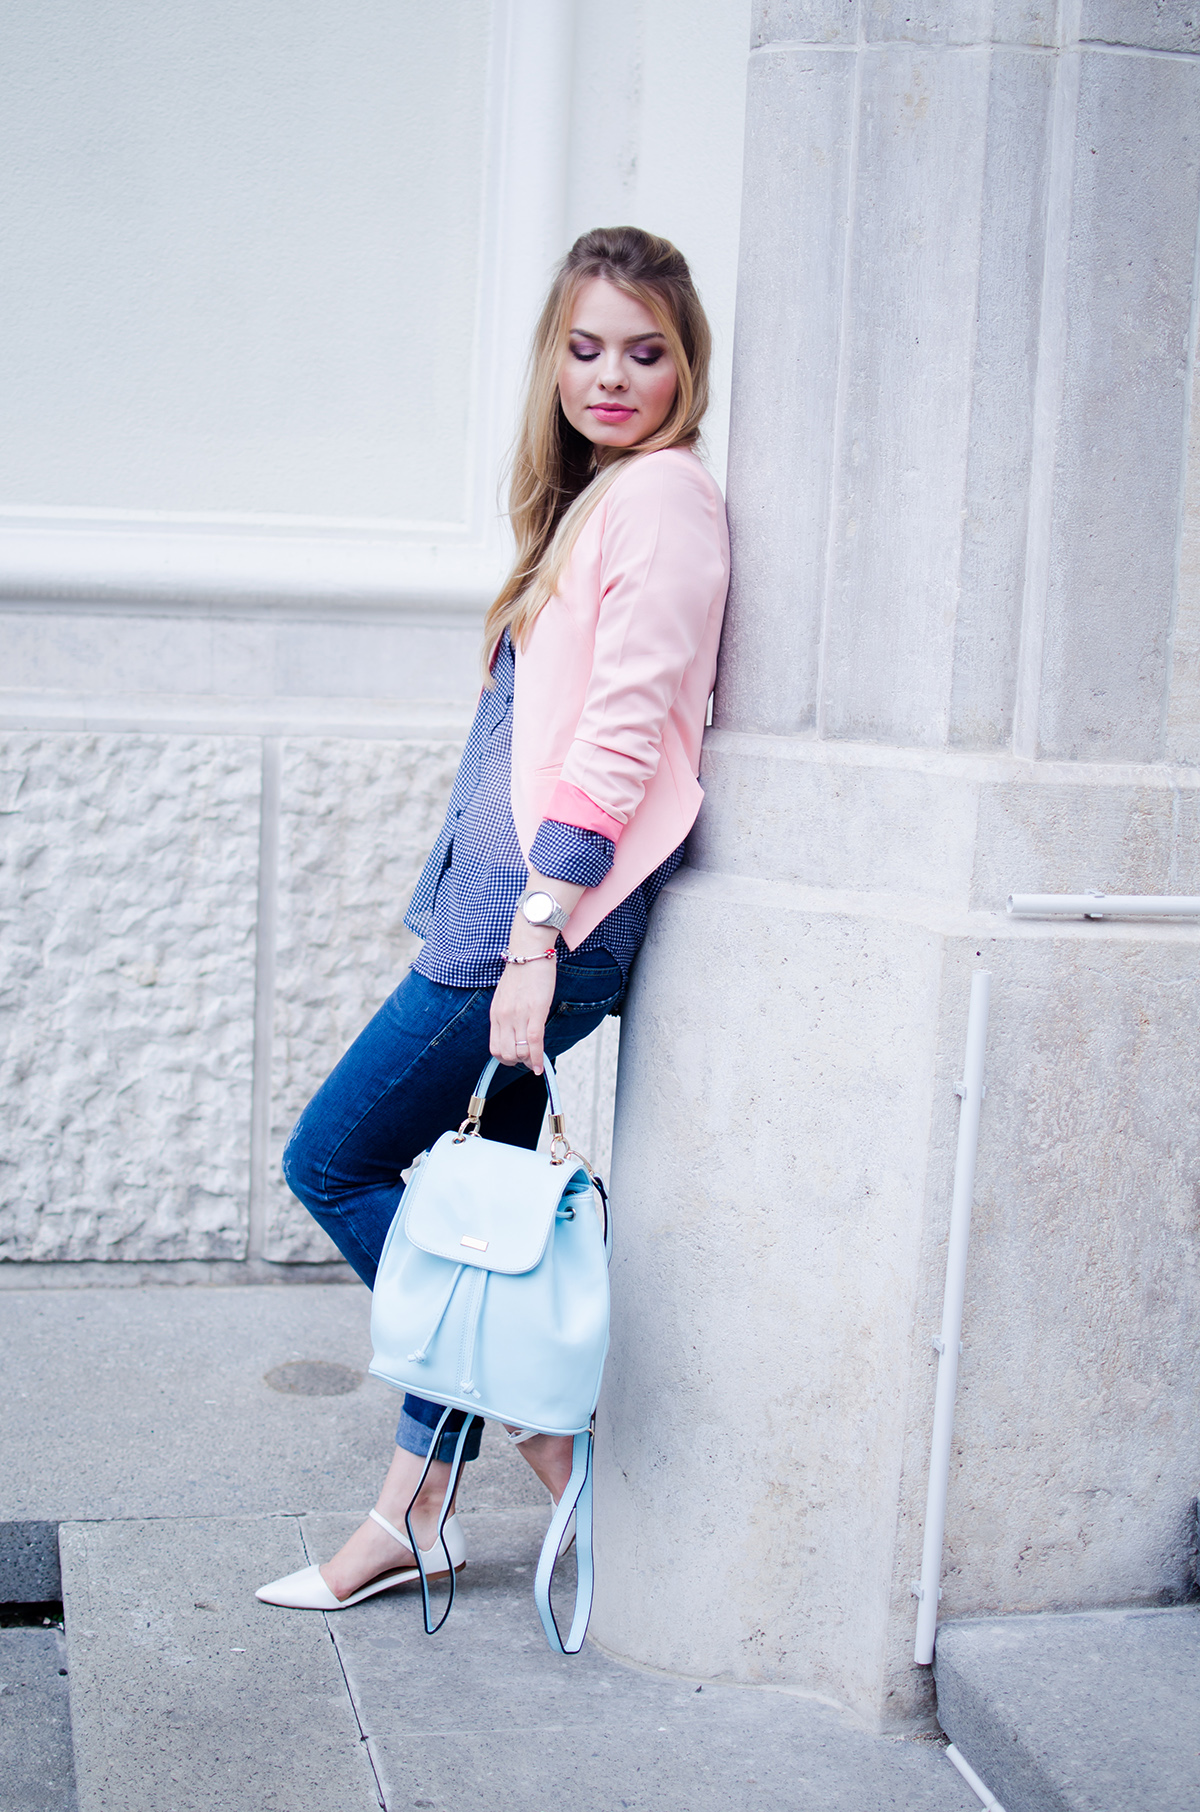 pink-blazer-skinny-jeans-white-pointed-flats-blue-backback-back-to-college (9)